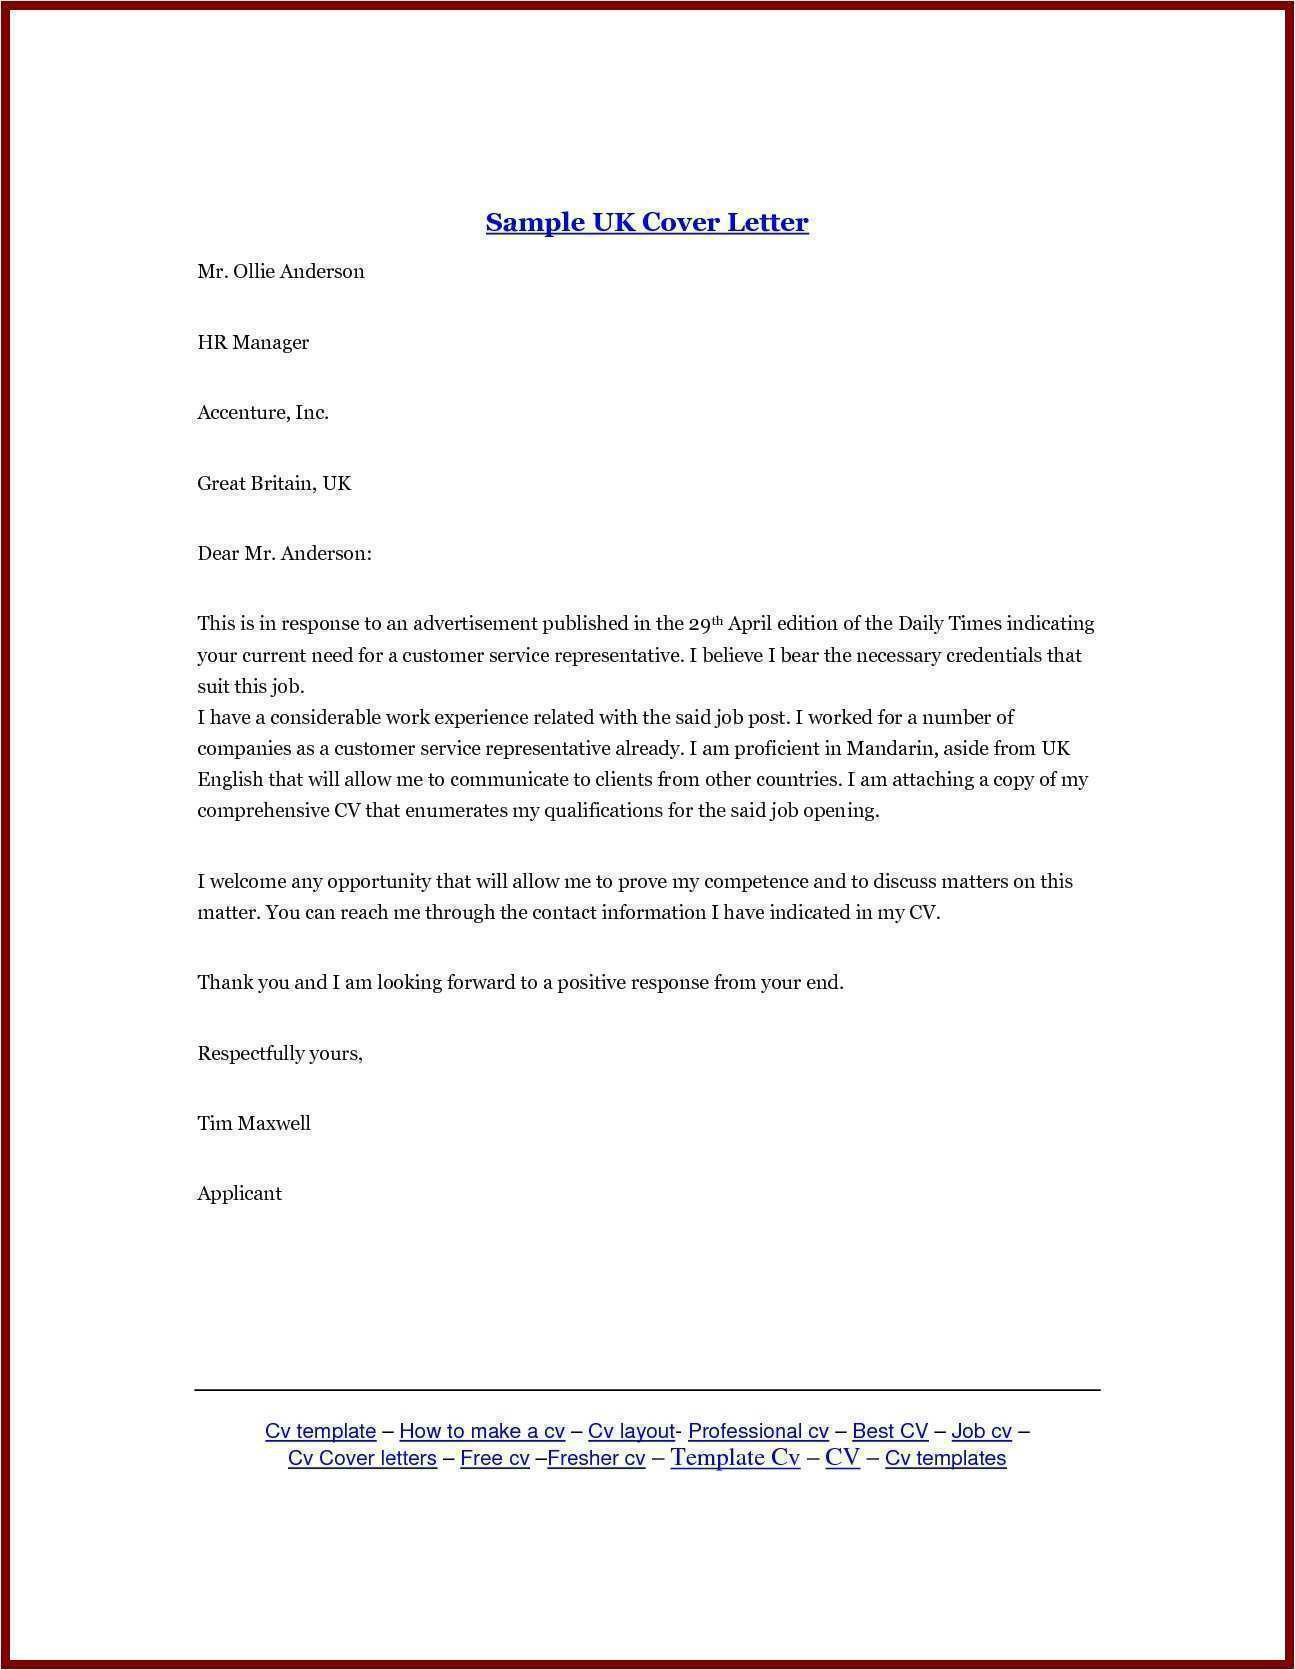 cover letter layout template example-Cover Letter Example for Job Opening New Bank Letter format formal Letter Template Unique bylaws Template 6-s